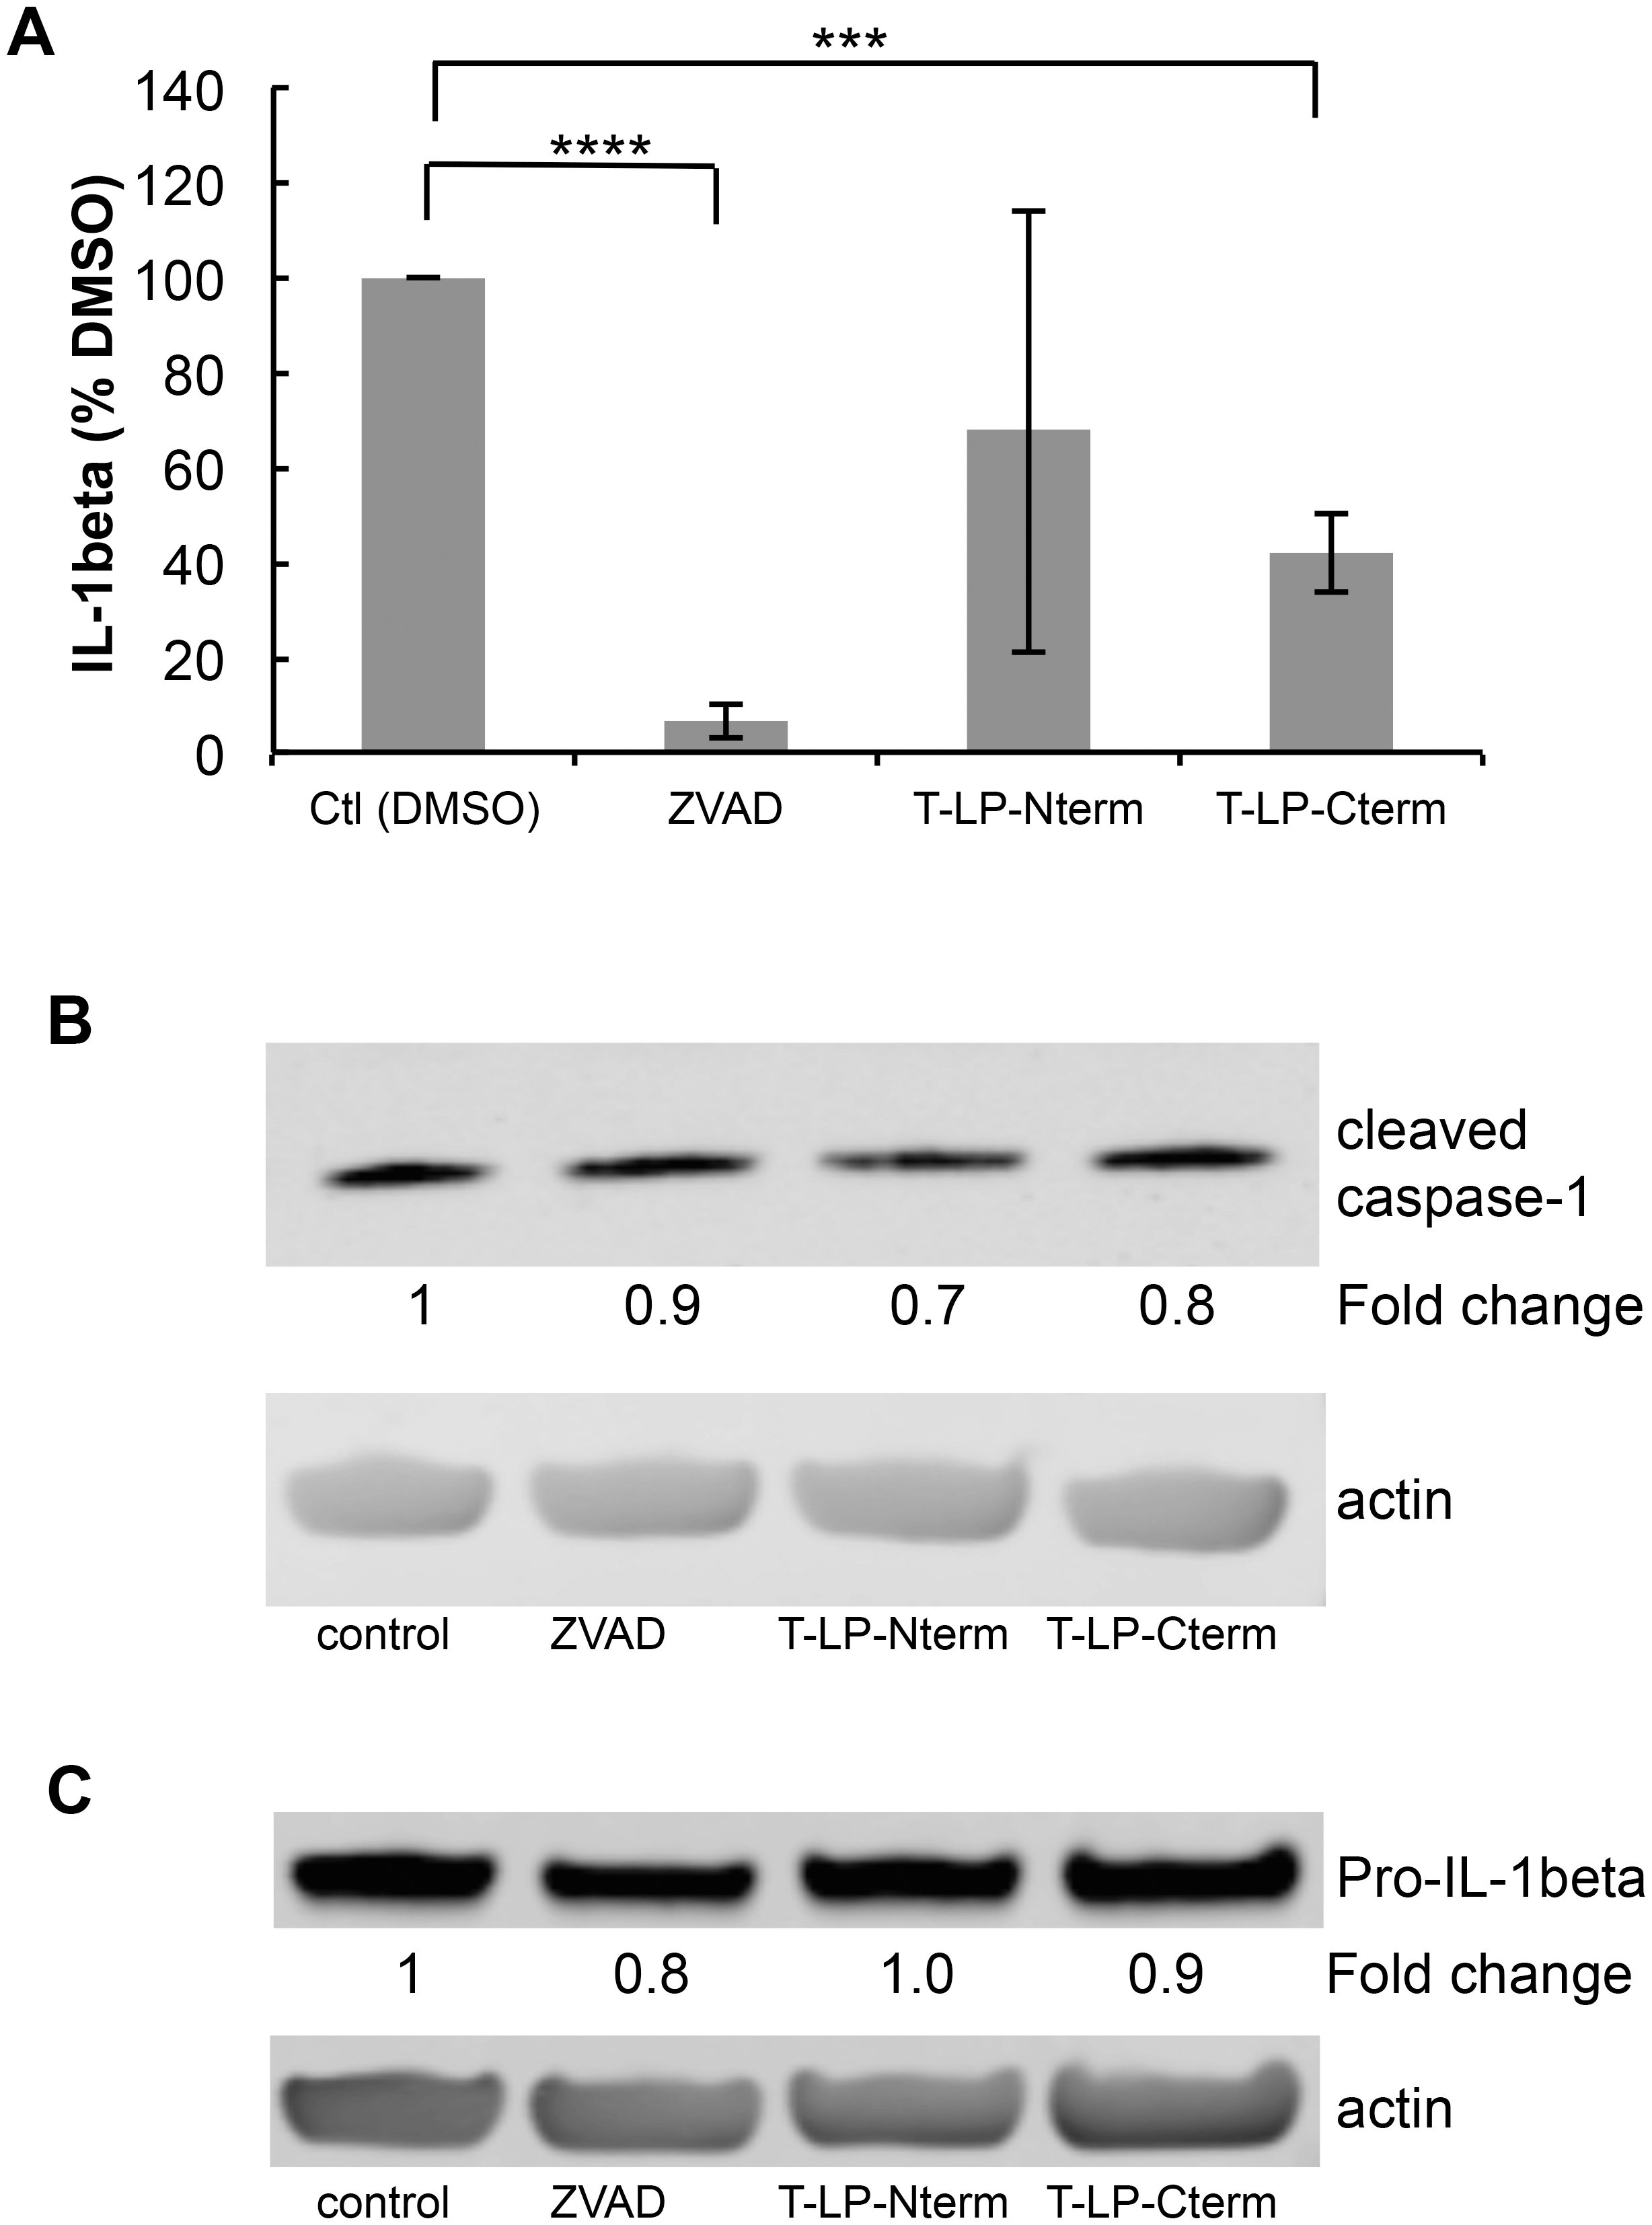 Peptides containing LANA caspase cleavage sites inhibit IL-1β production.